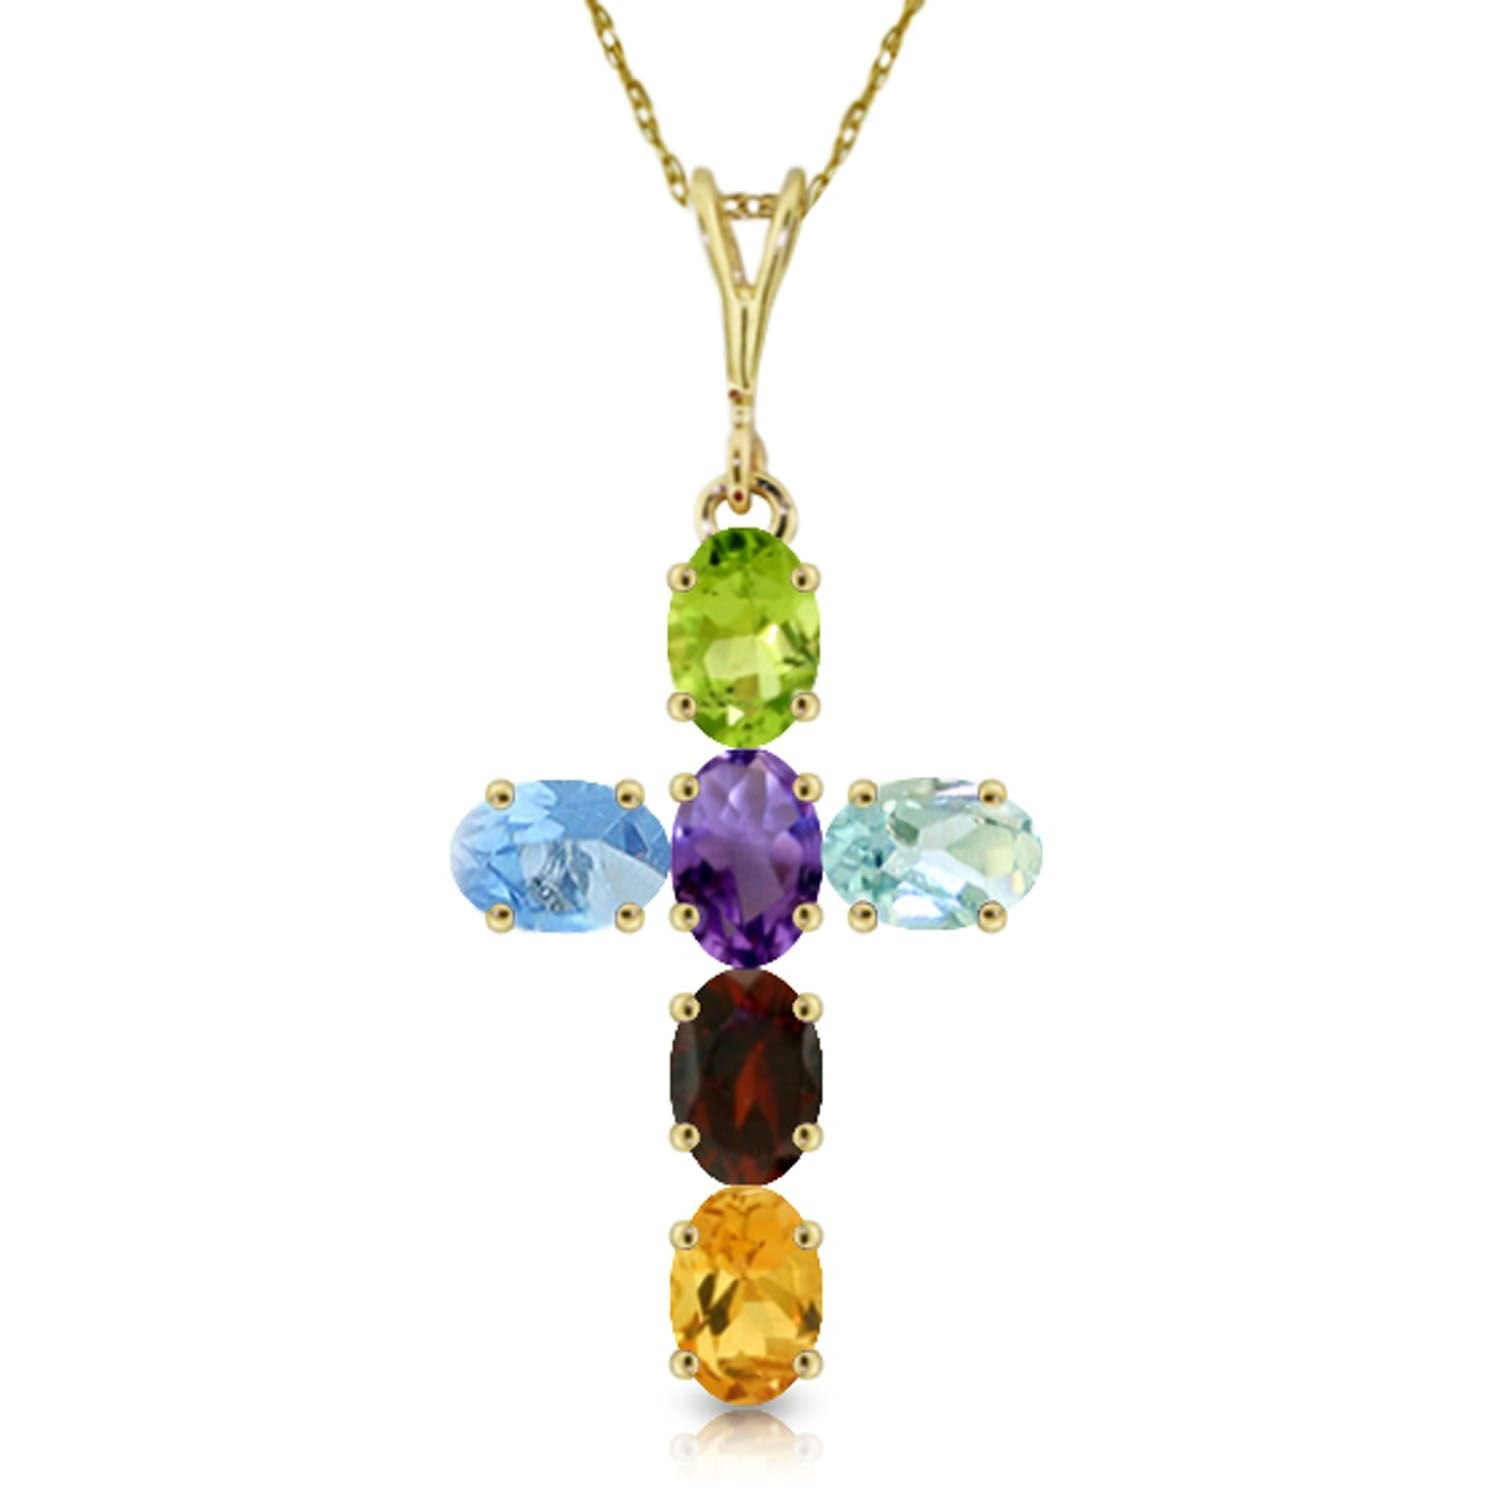 ALARRI 1.5 Carat 14K Solid Gold Cross Necklace Natural Multicolor Gems with 18 Inch Chain Length